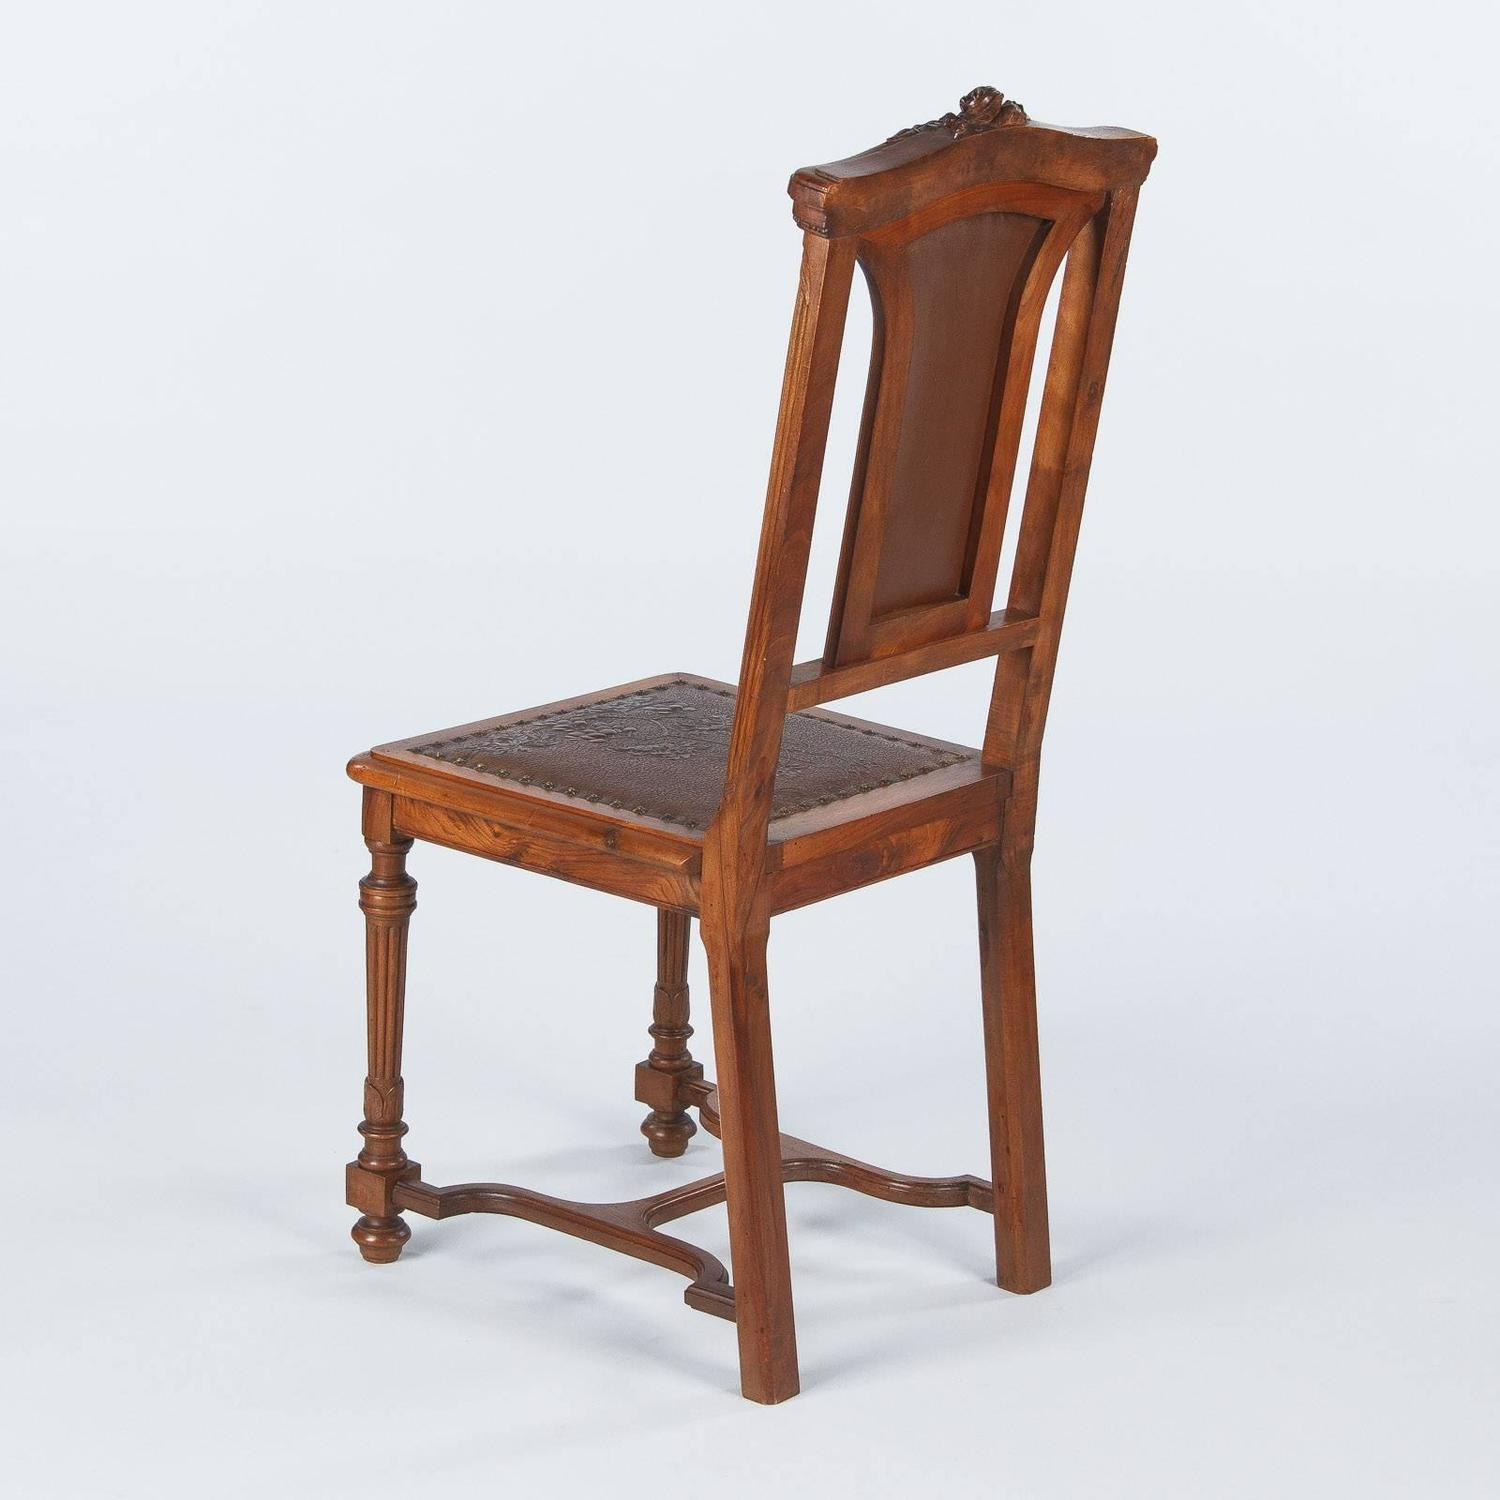 French Renaissance Style Leather Seat Chair Late 1800s